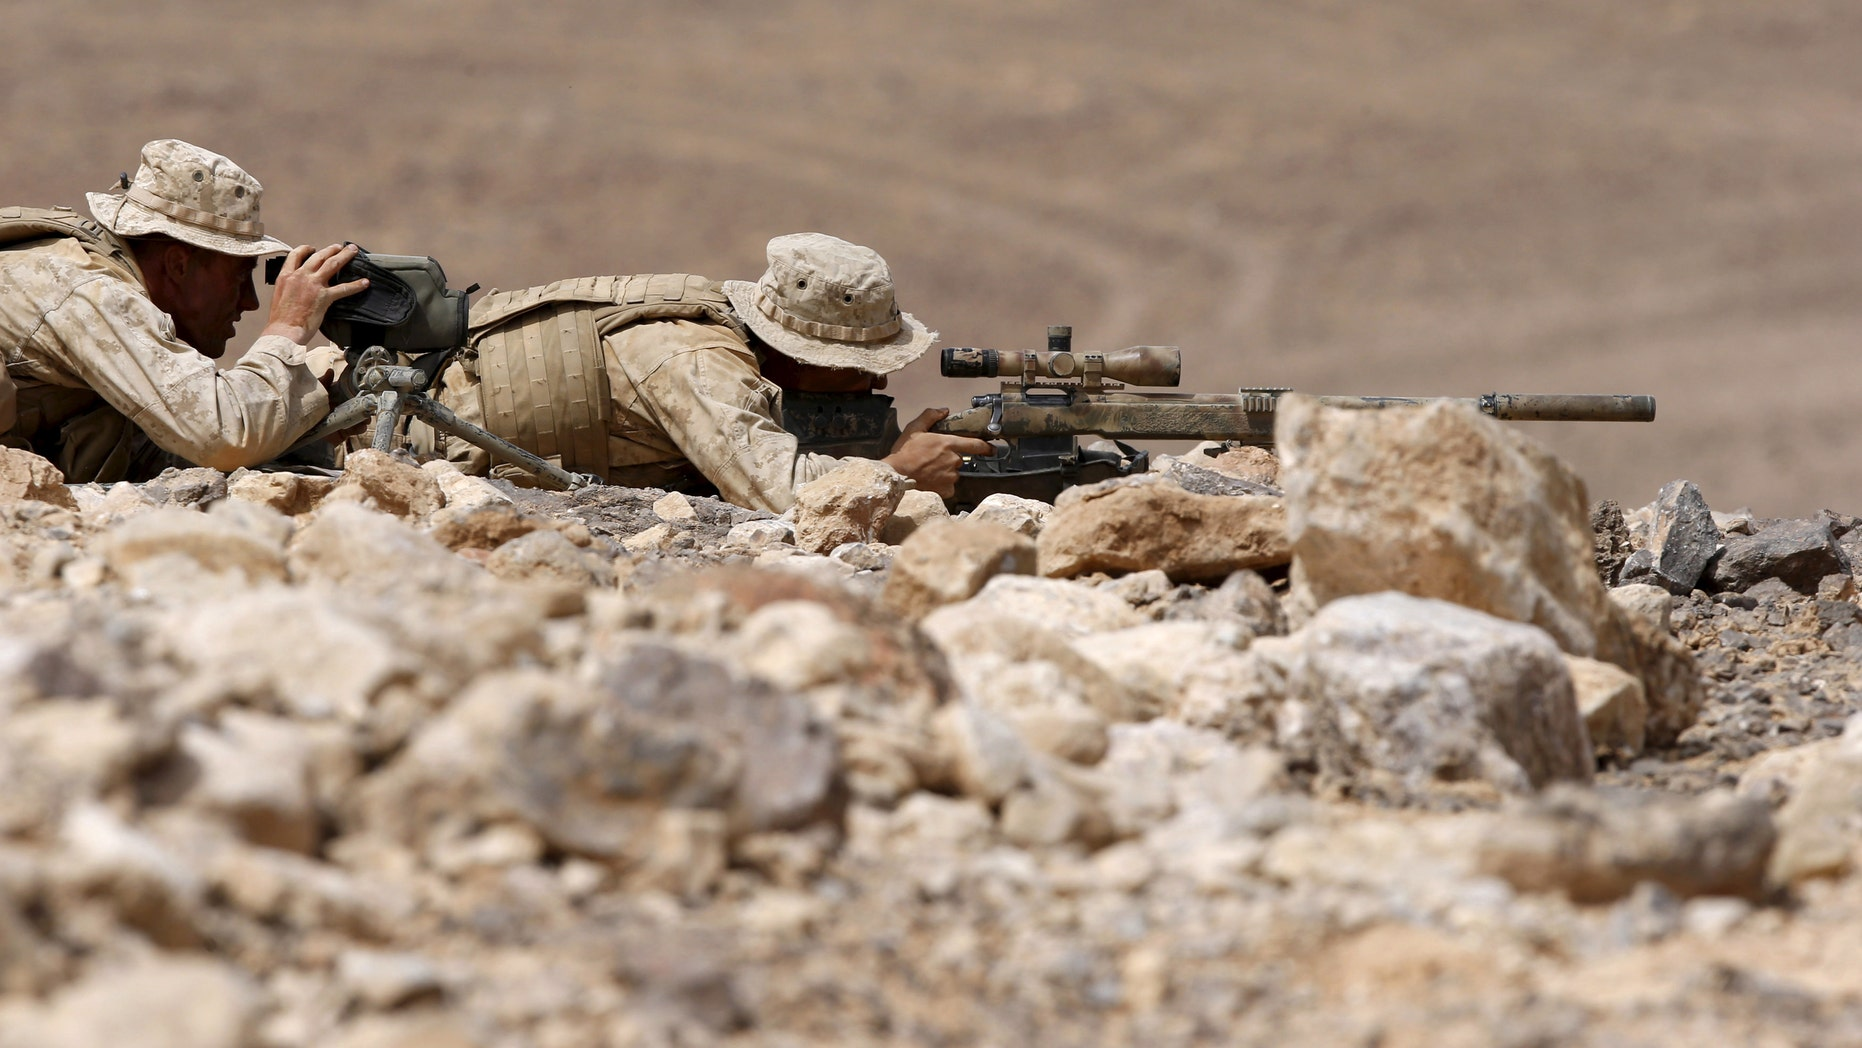 File photo - U.S. soldiers participate in Exercise Eager Lion at the Jordan-Saudi Arabia border, south of Amman May 18, 2015.